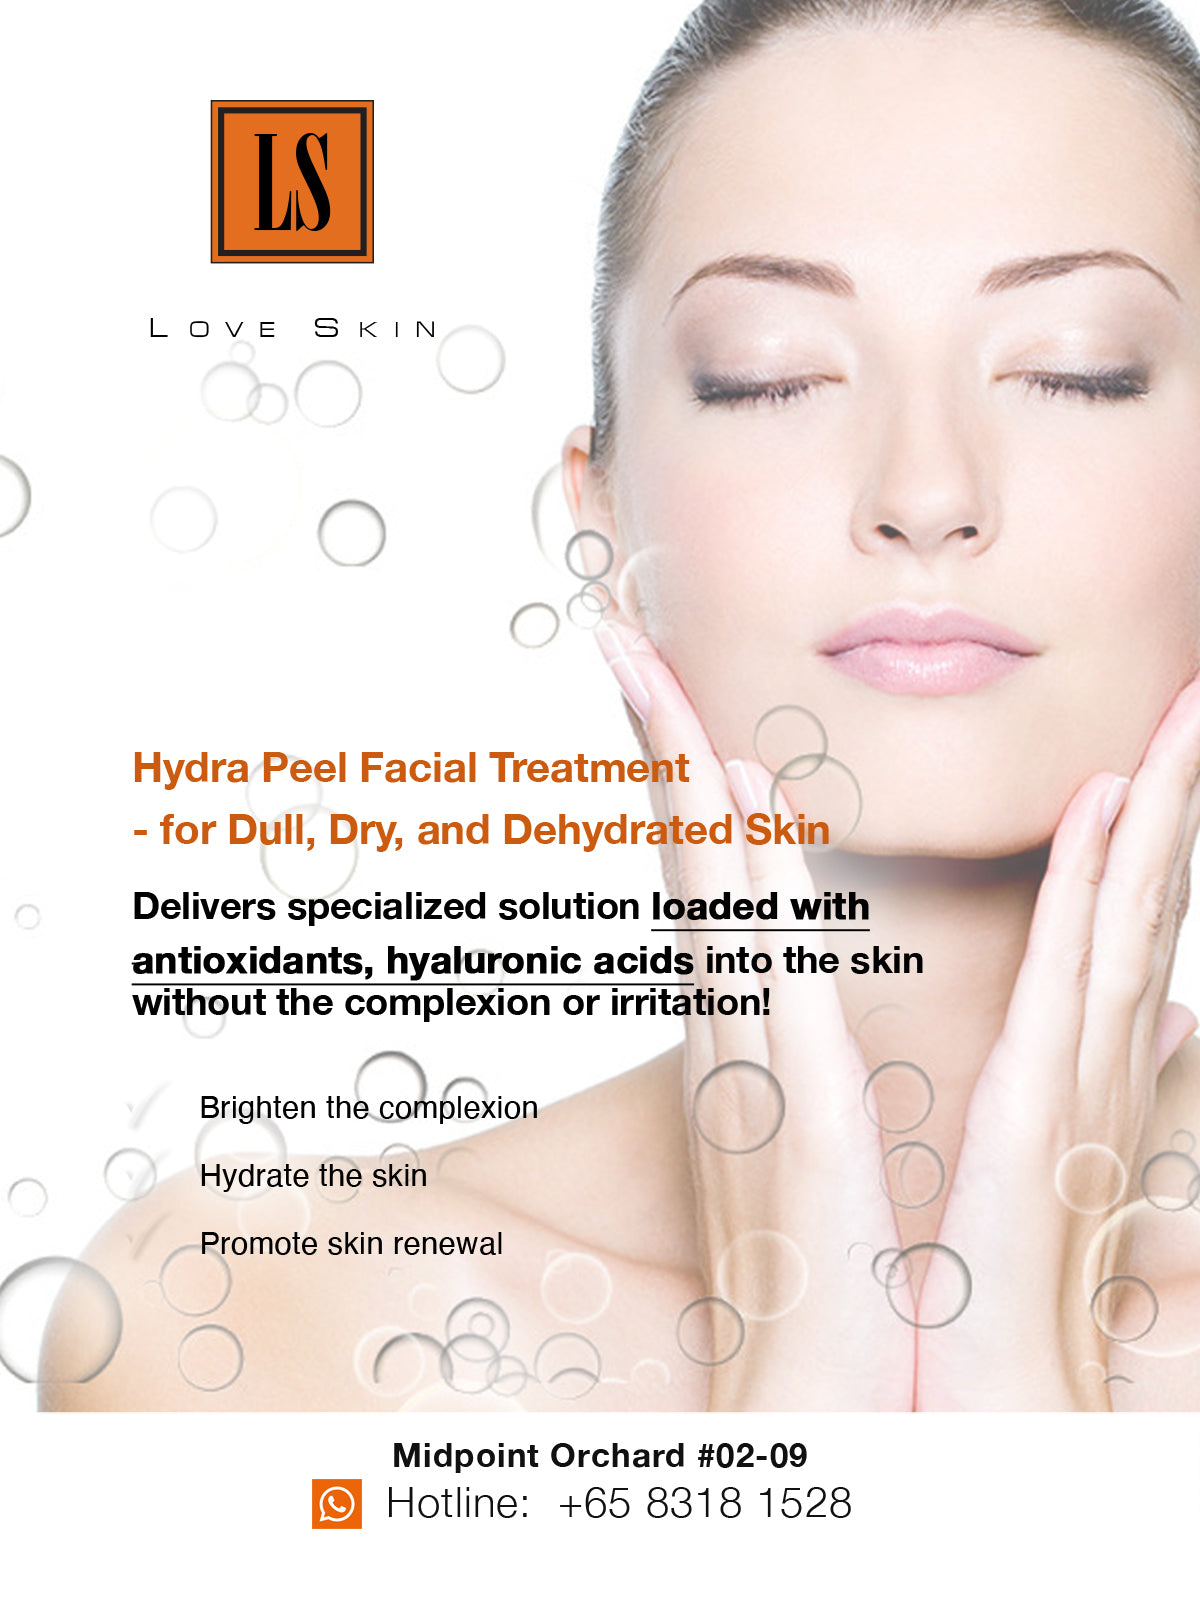 [S190007-60] Hydra Peel Facial Treatment - for Dull, Dry, and Dehydrated Skin